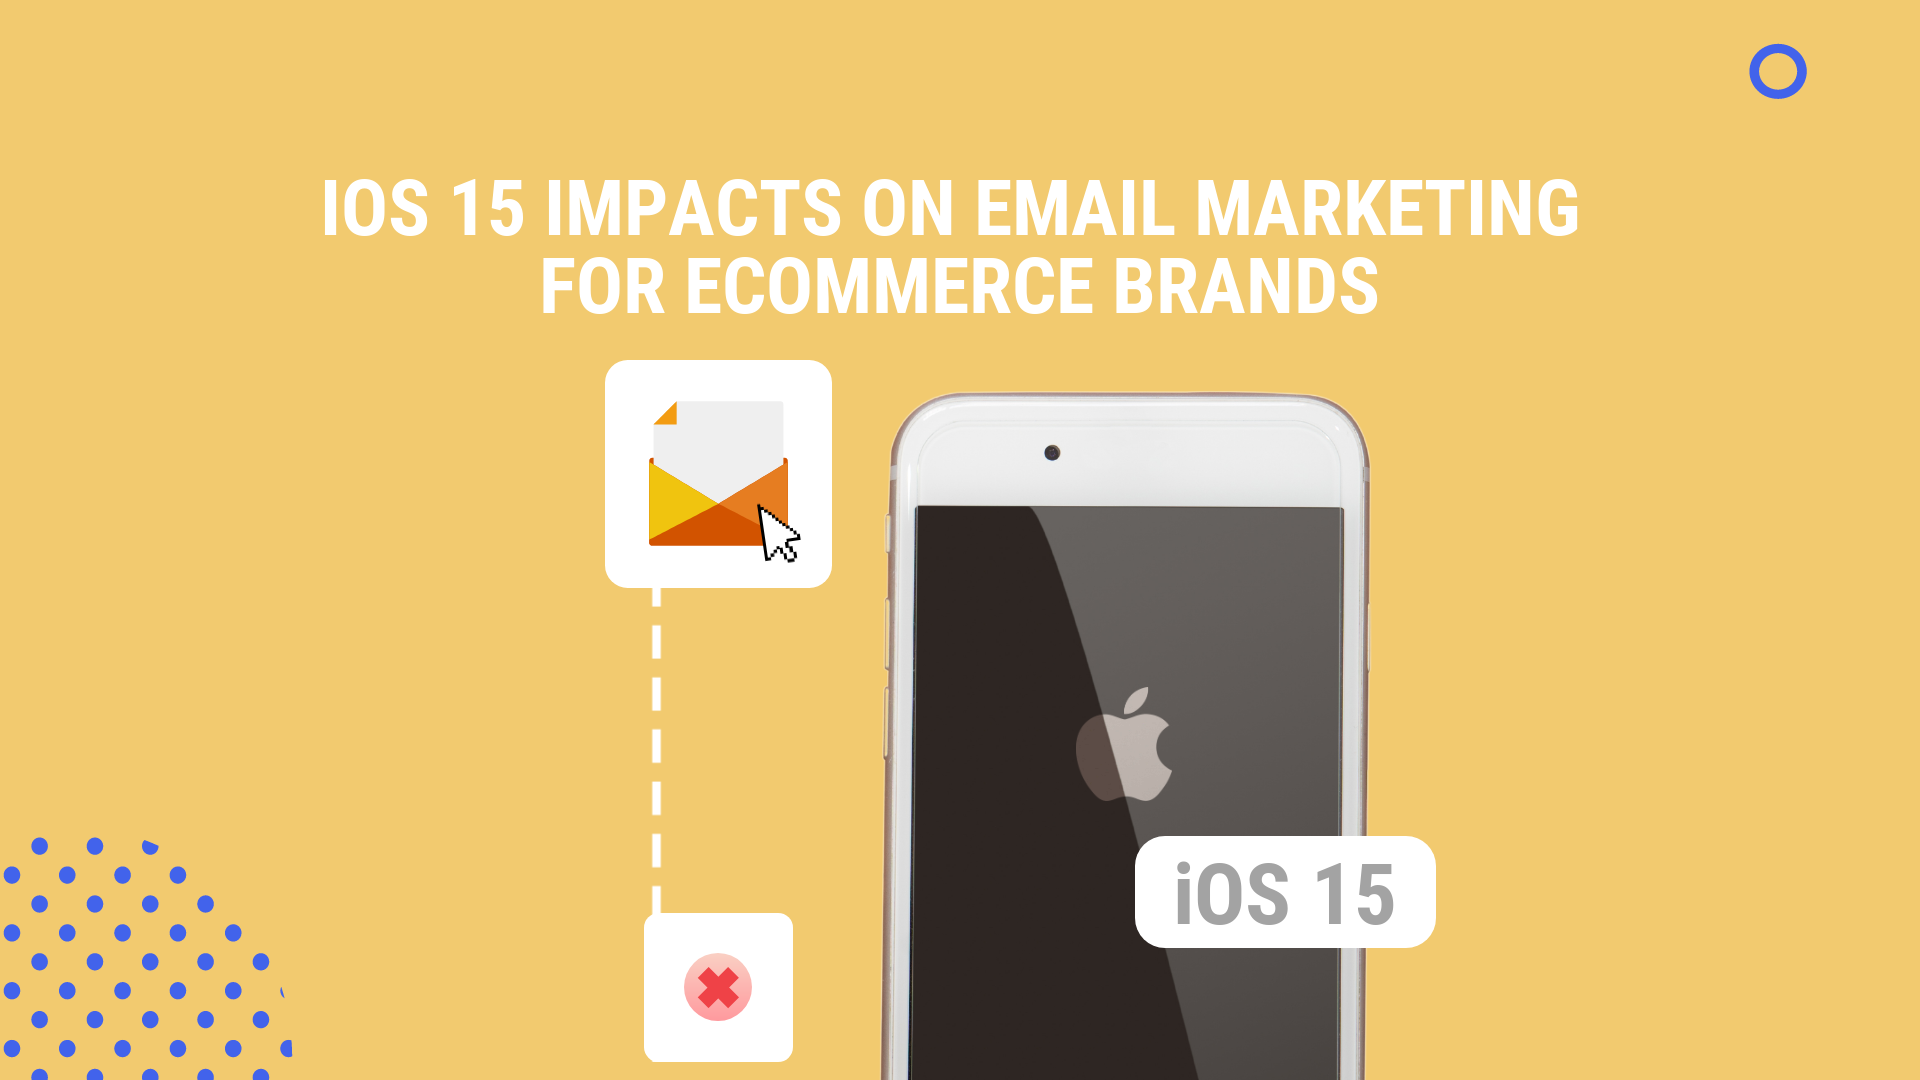 iOS 15 Impacts on Email Marketing for eCommerce Brands